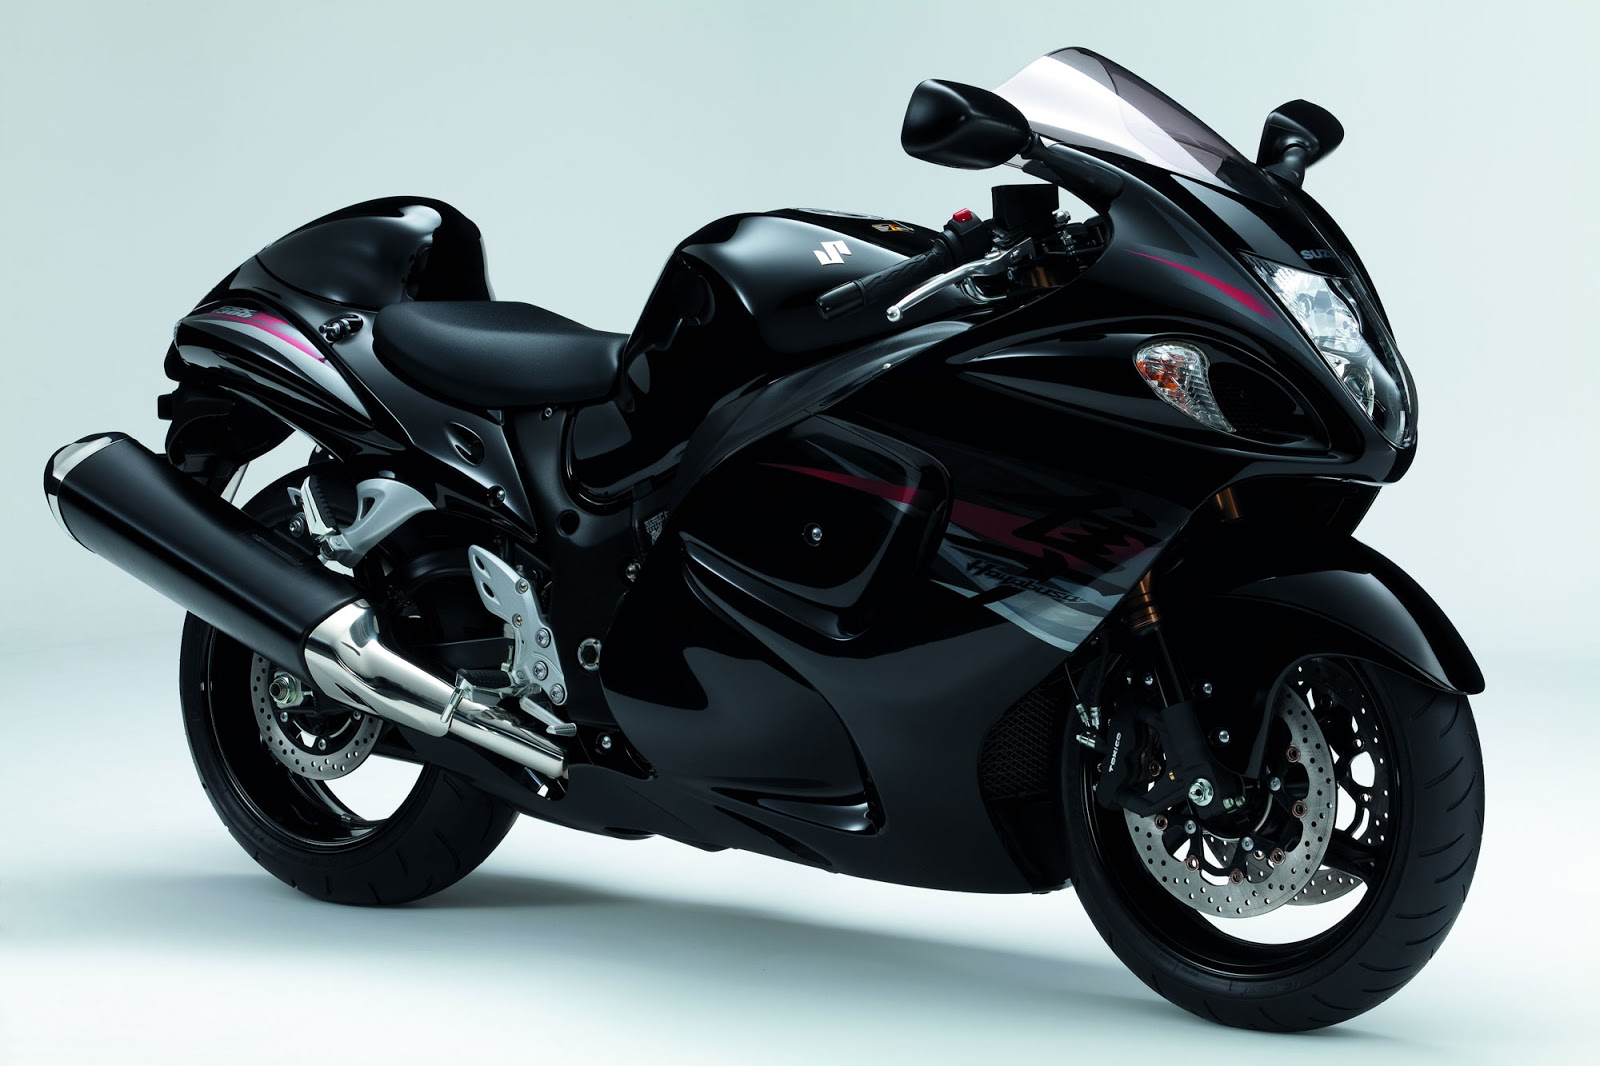 Upcoming Yamaha YZF R15 V3 price, specification, details colors in